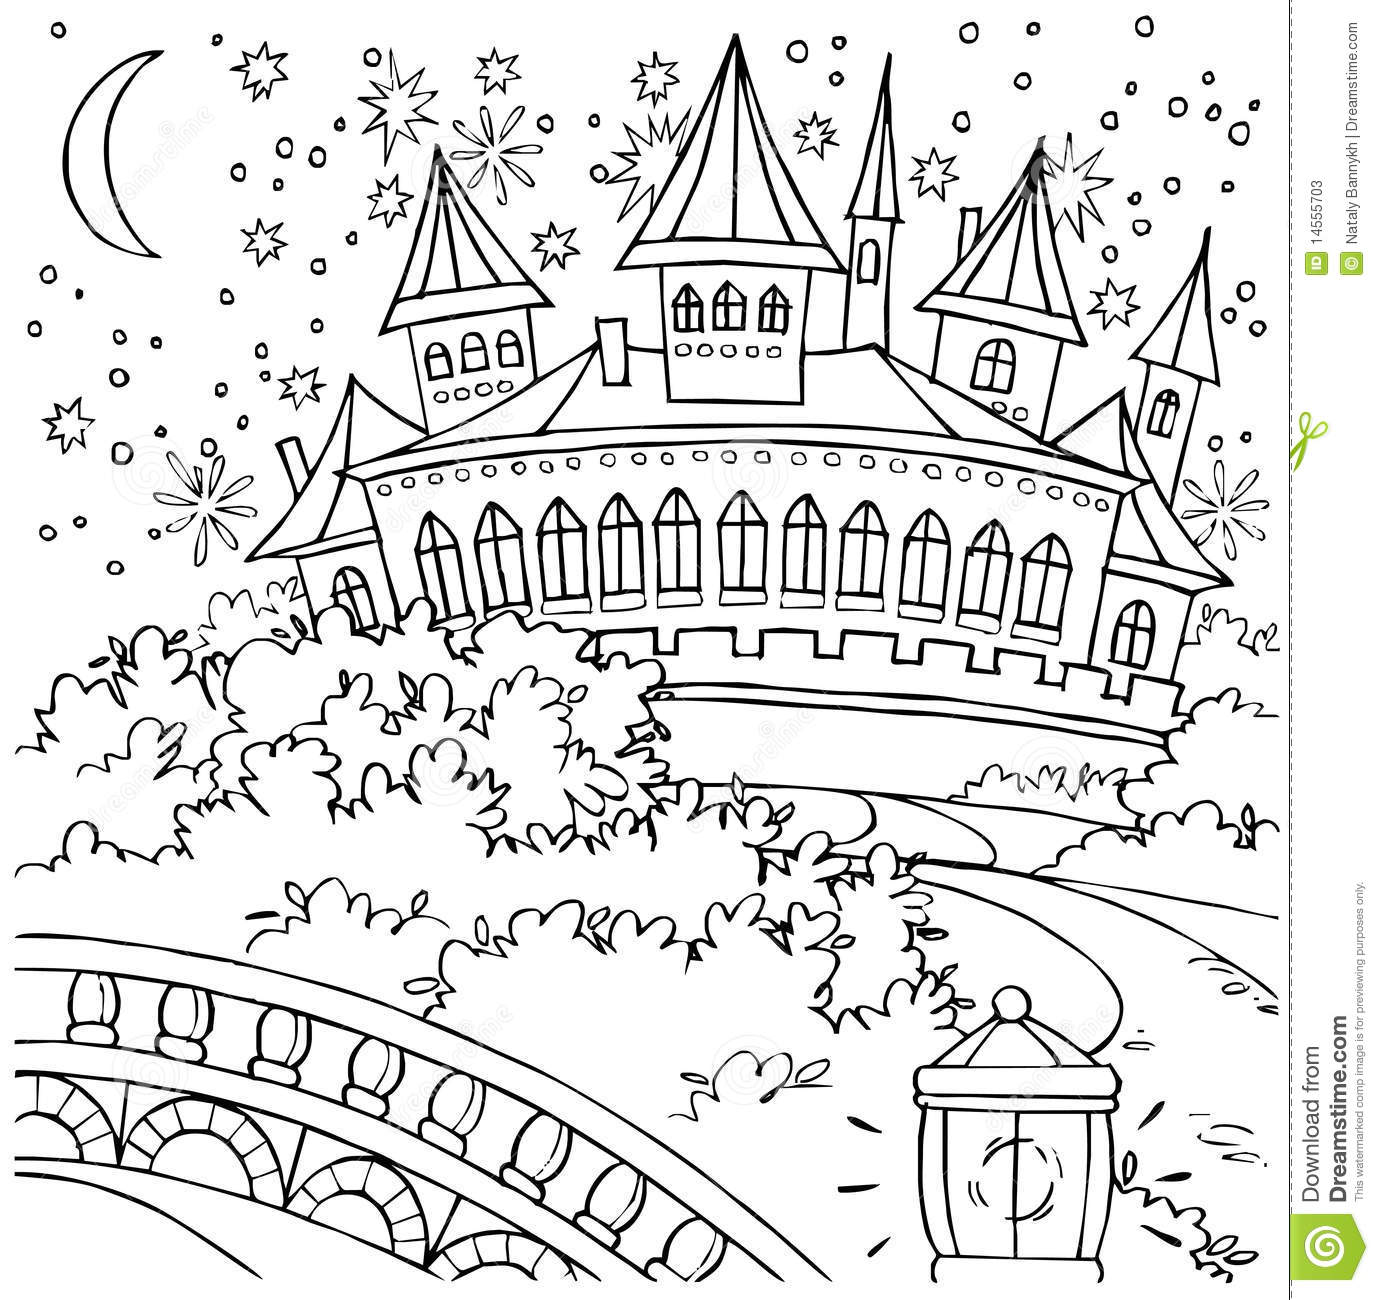 Castle stock illustration. Illustration of funny, coloring - 14555703